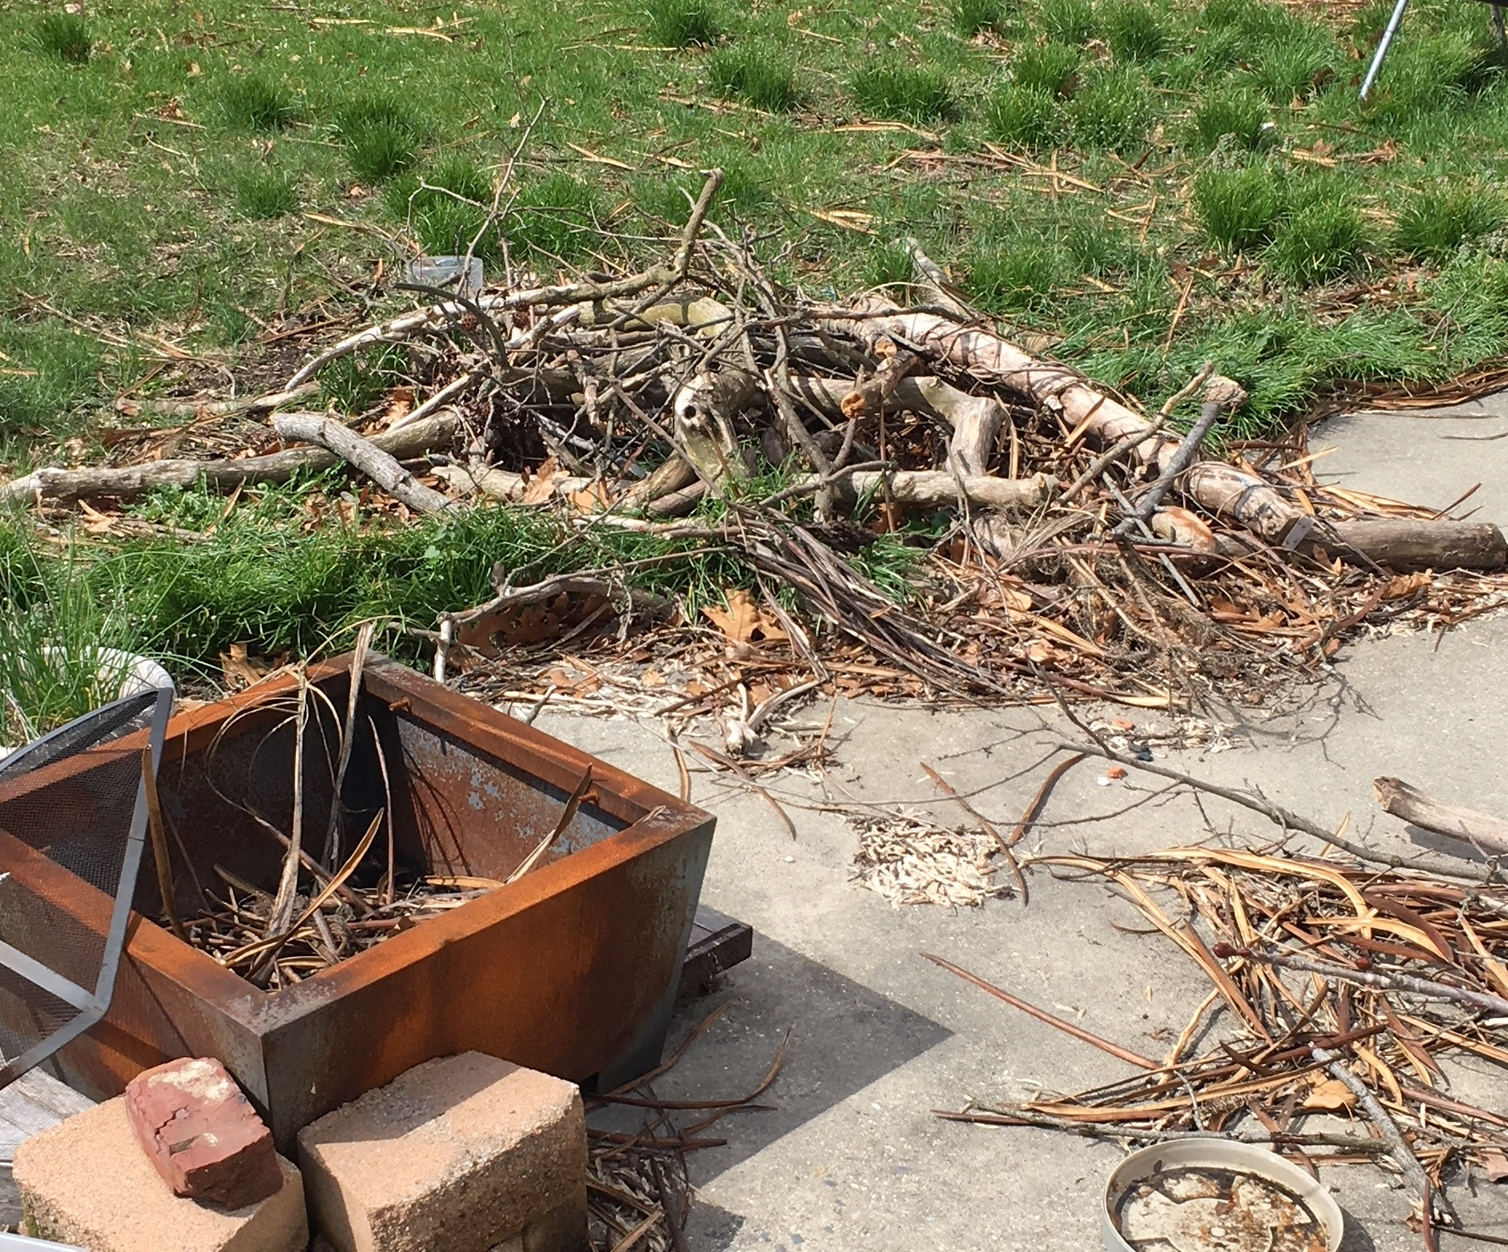 Right now we just have piles of firewood in various places in the yard, as it gets to be fire season, we will chop and organize our stash.